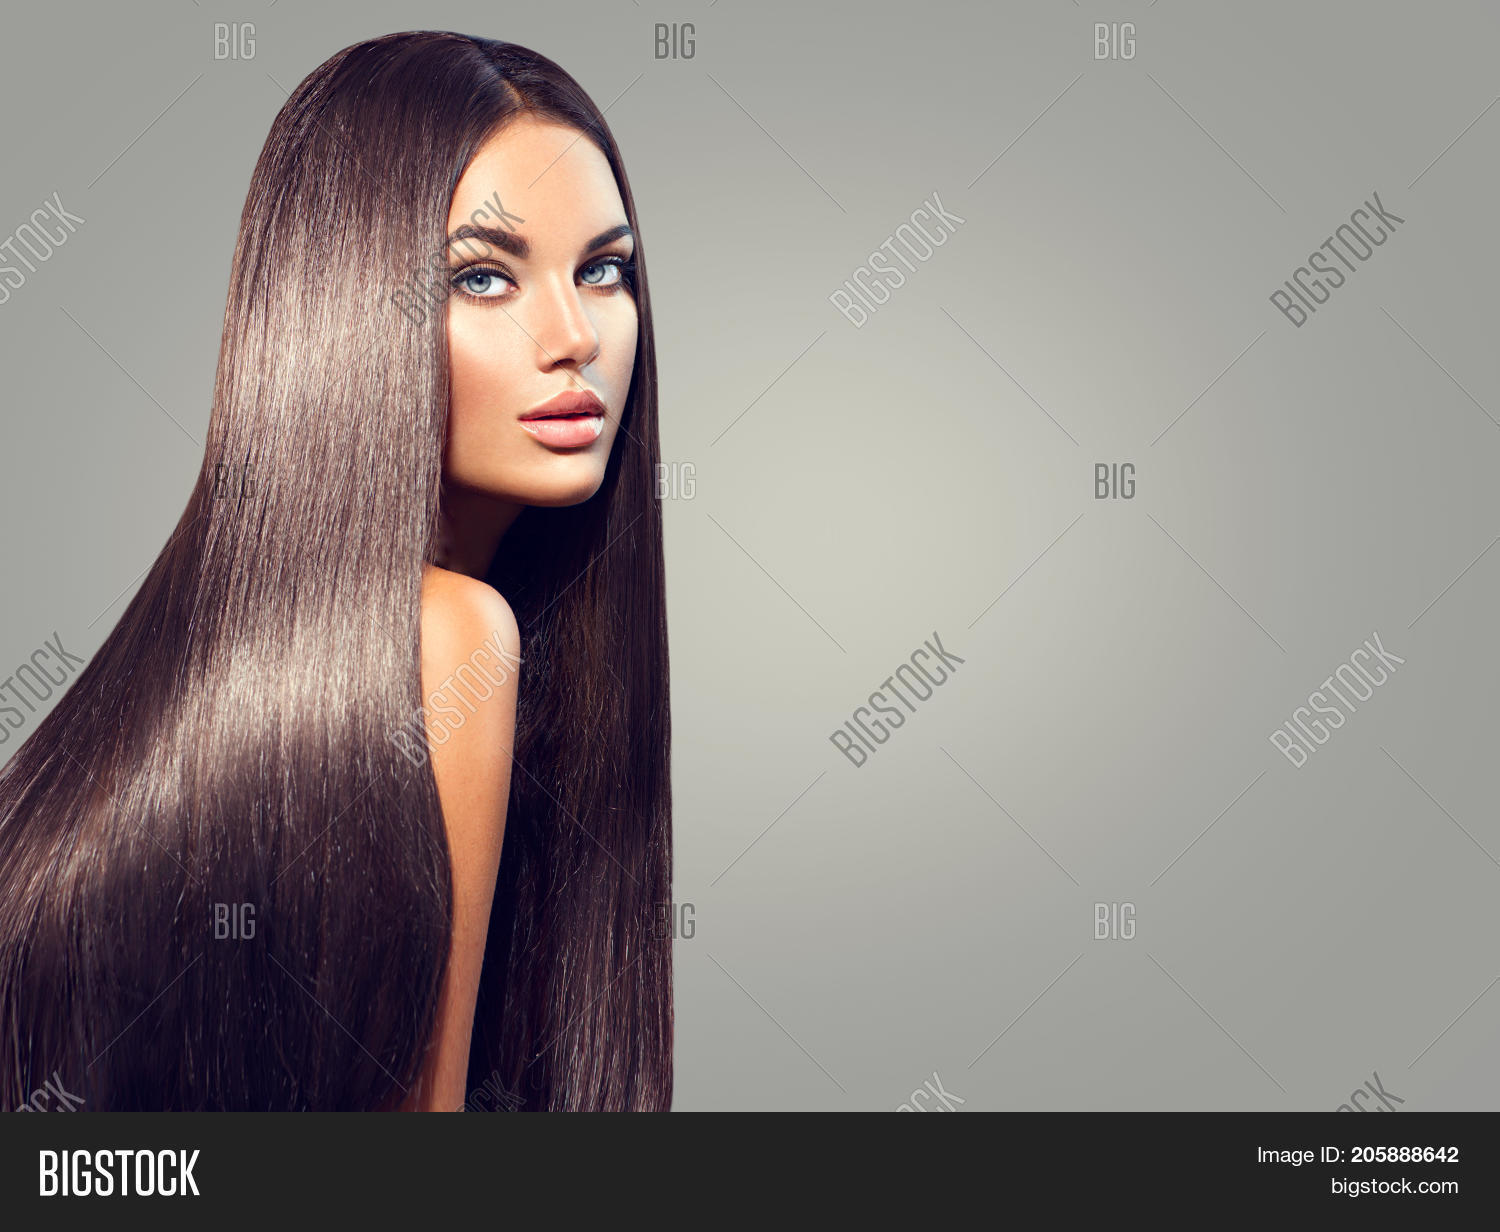 Beautiful Long Hair Image Photo Free Trial Bigstock